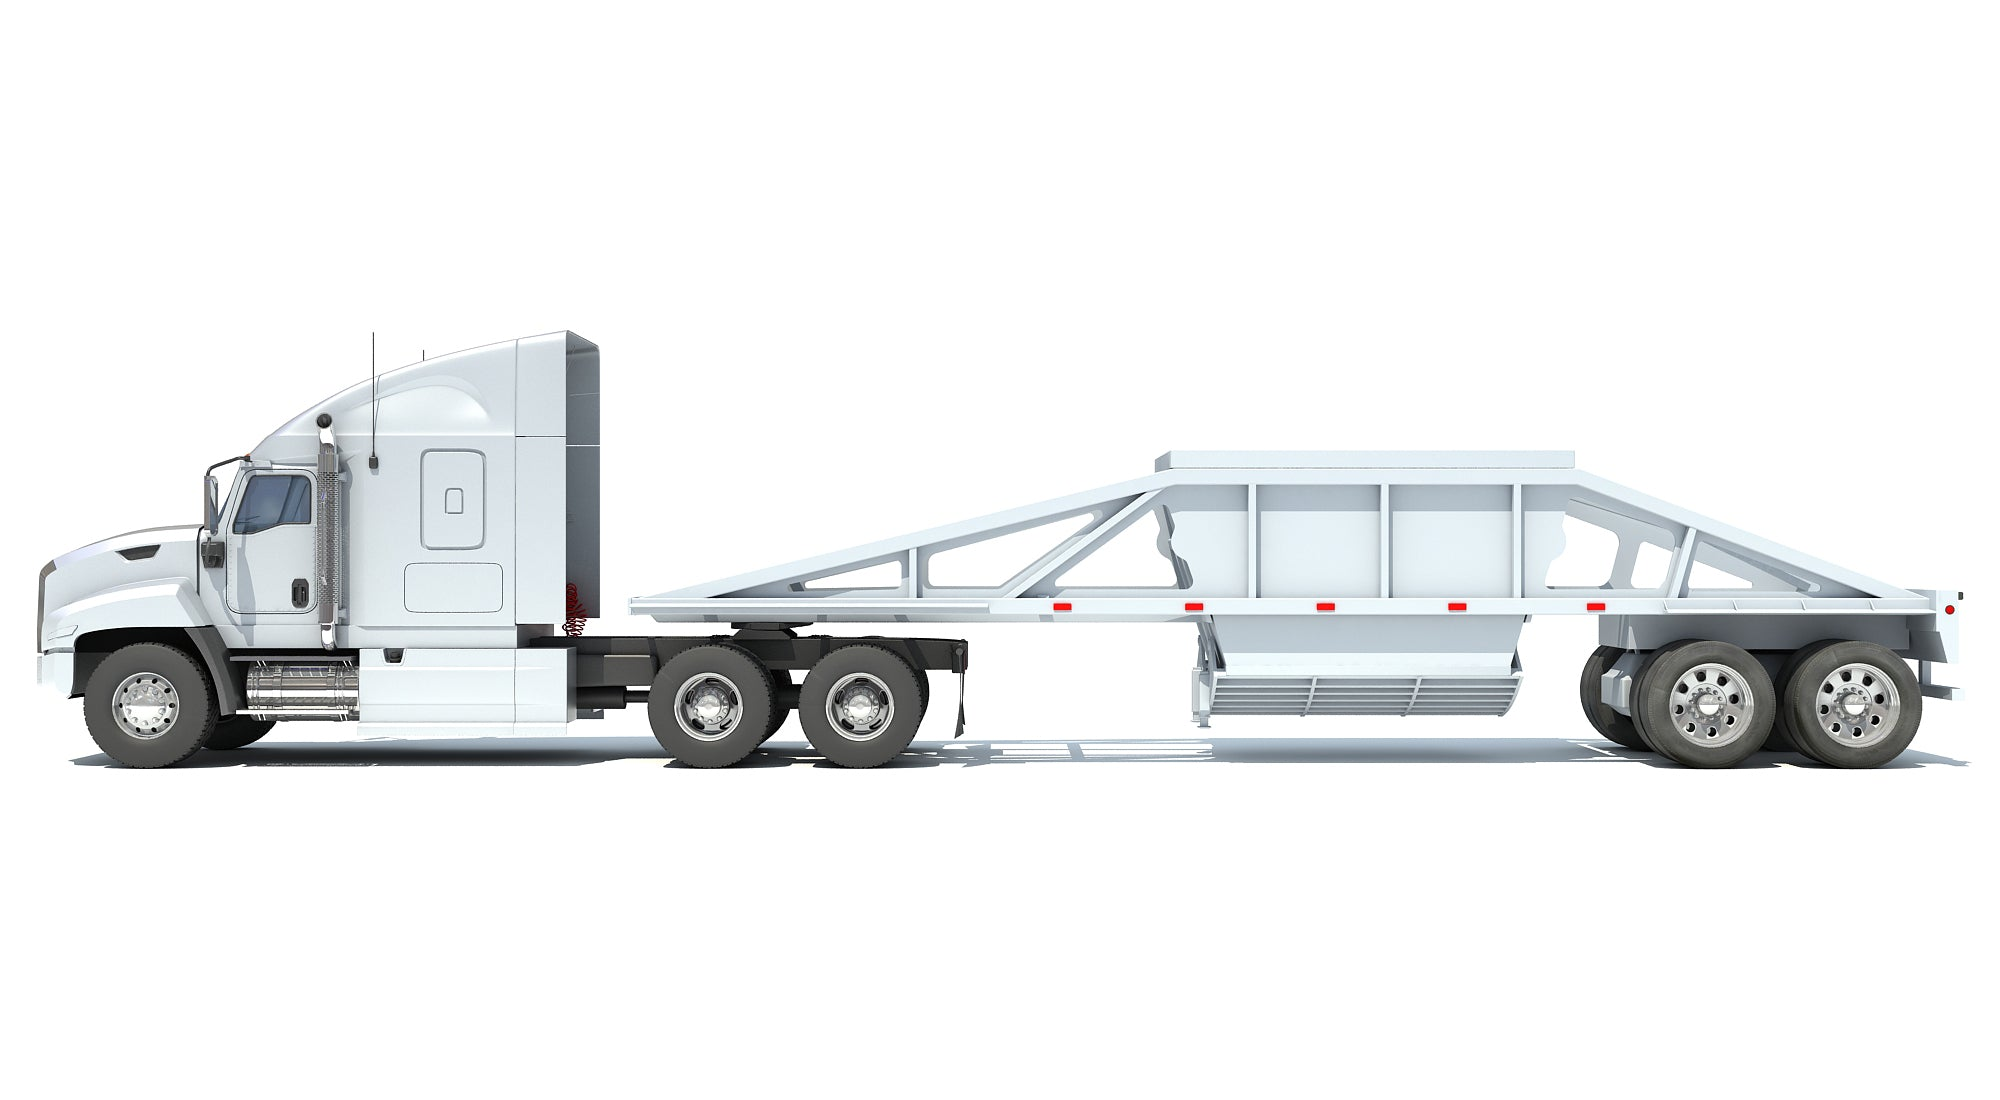 Truck with Bottom Dump Trailer